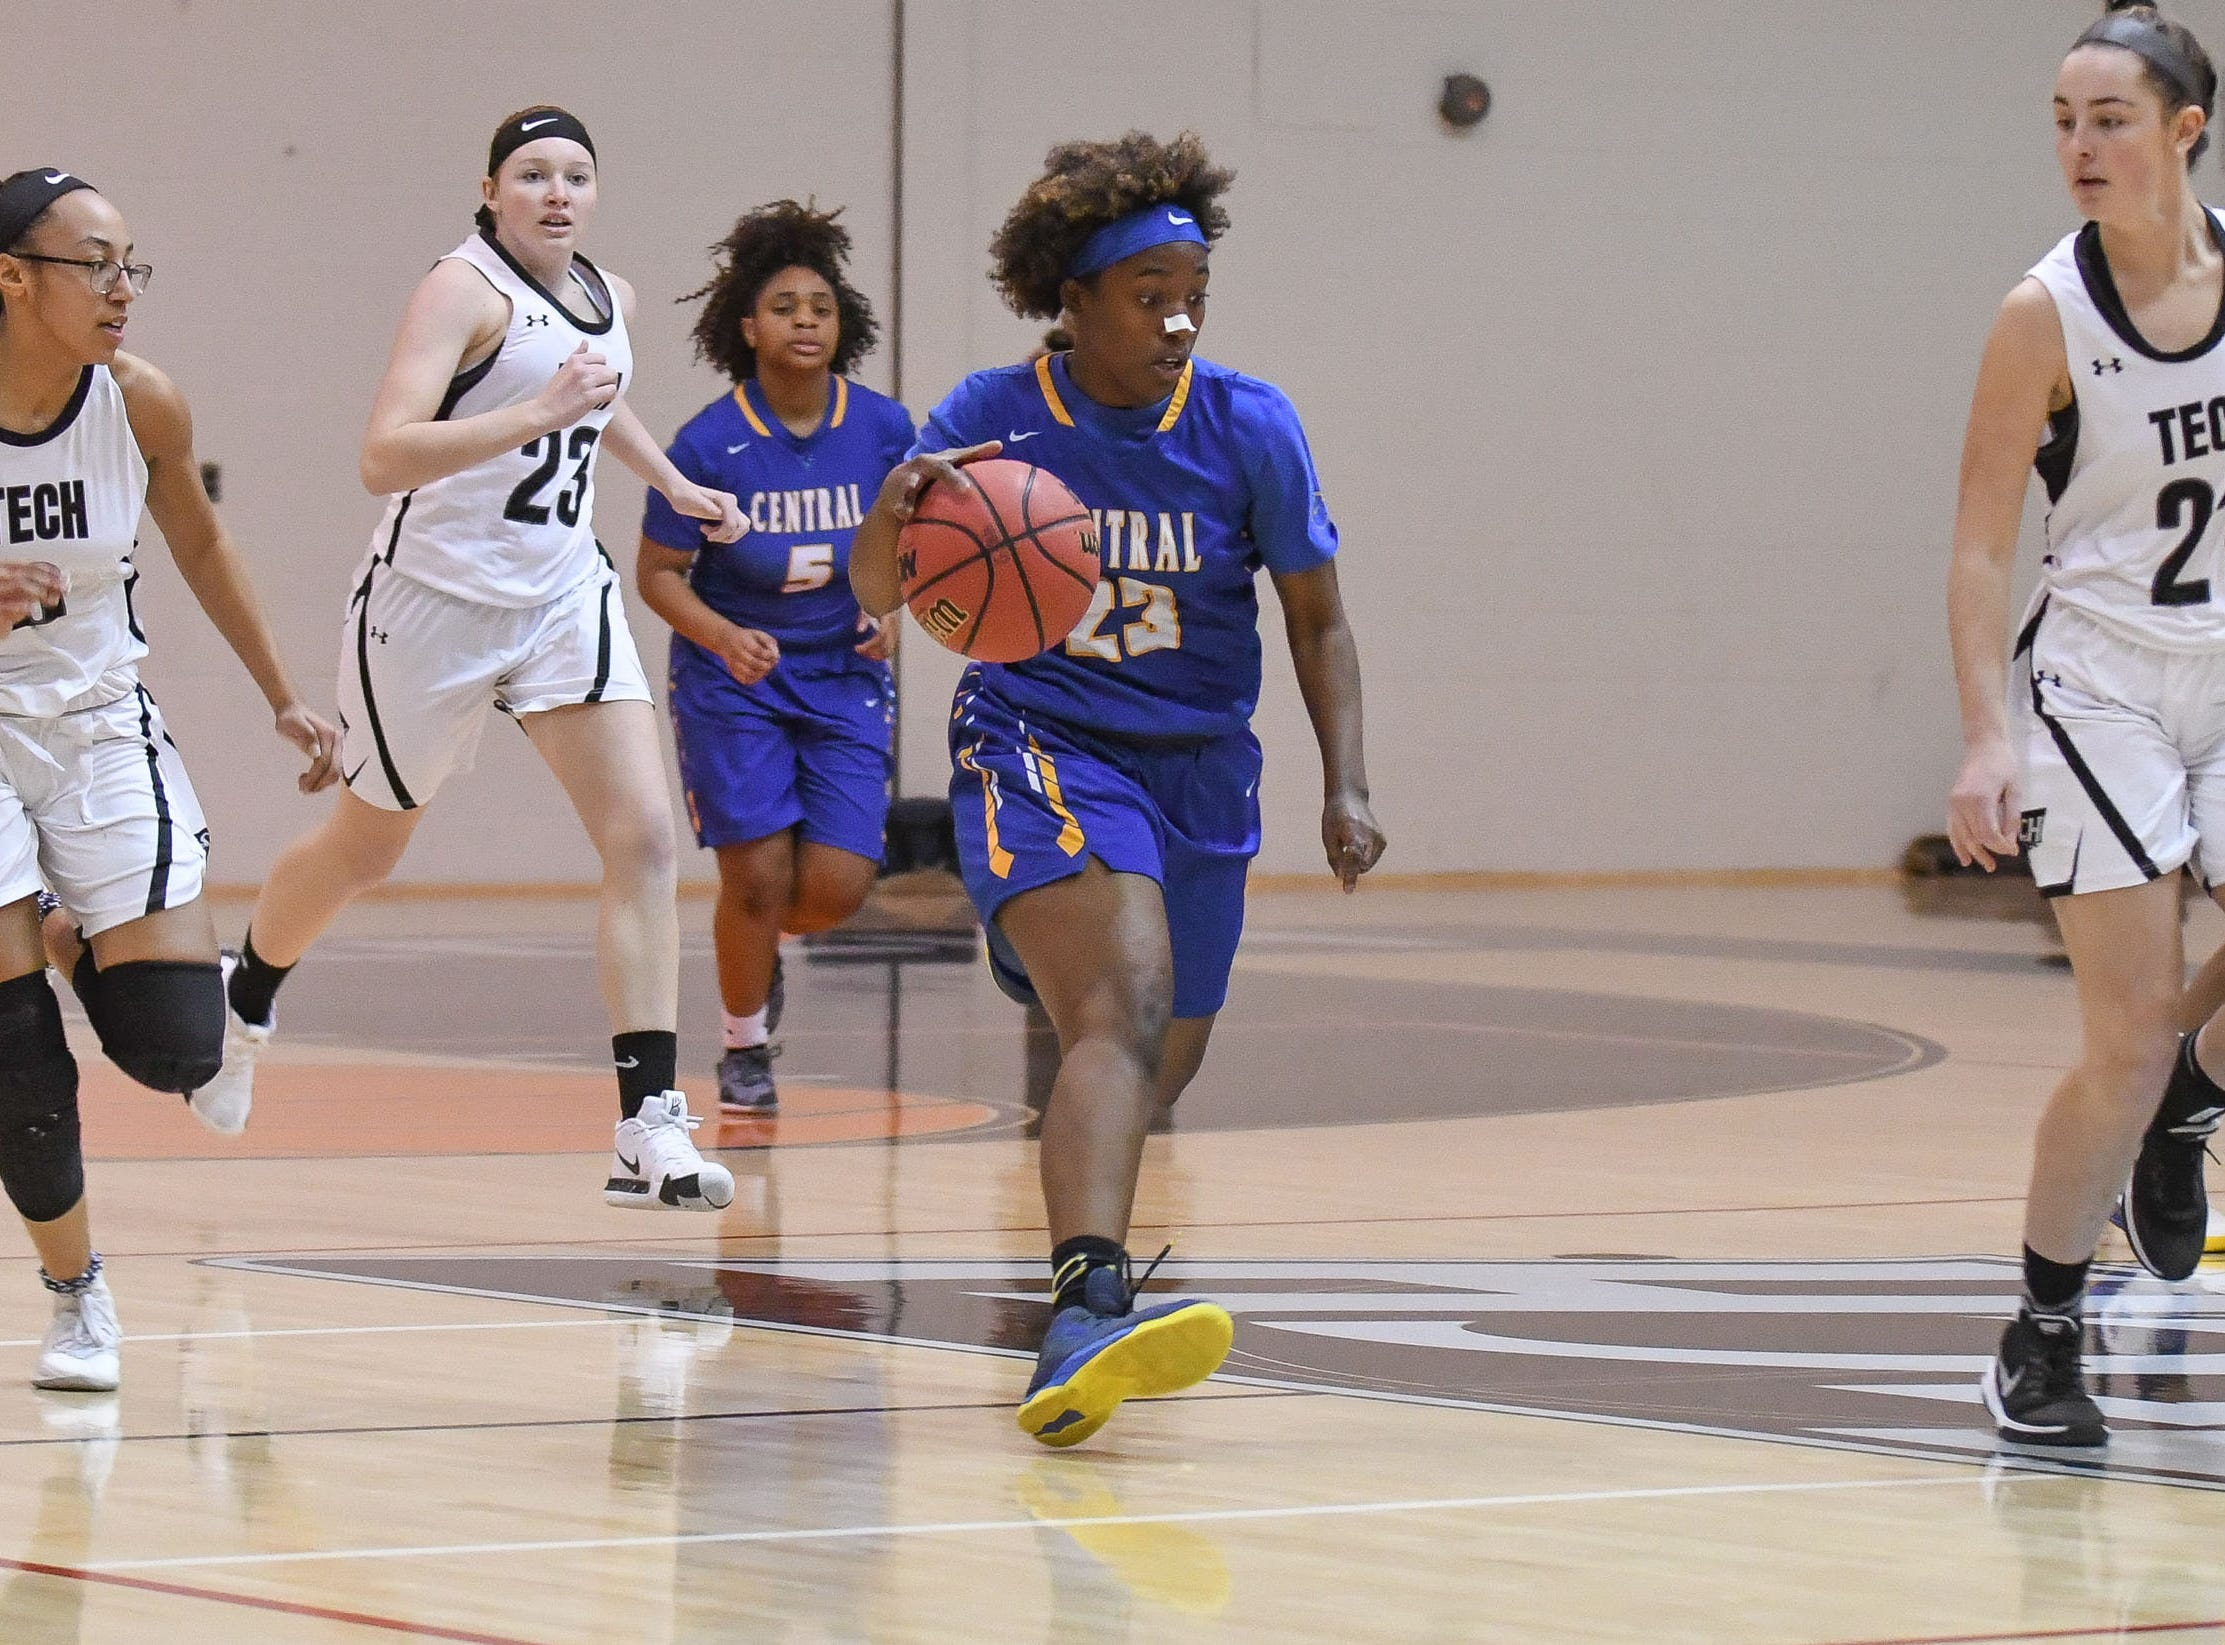 Sussex Central's Ramona Stratton drives the ball down the court against Sussex Tech on Thursday, Jan. 31, 2019.